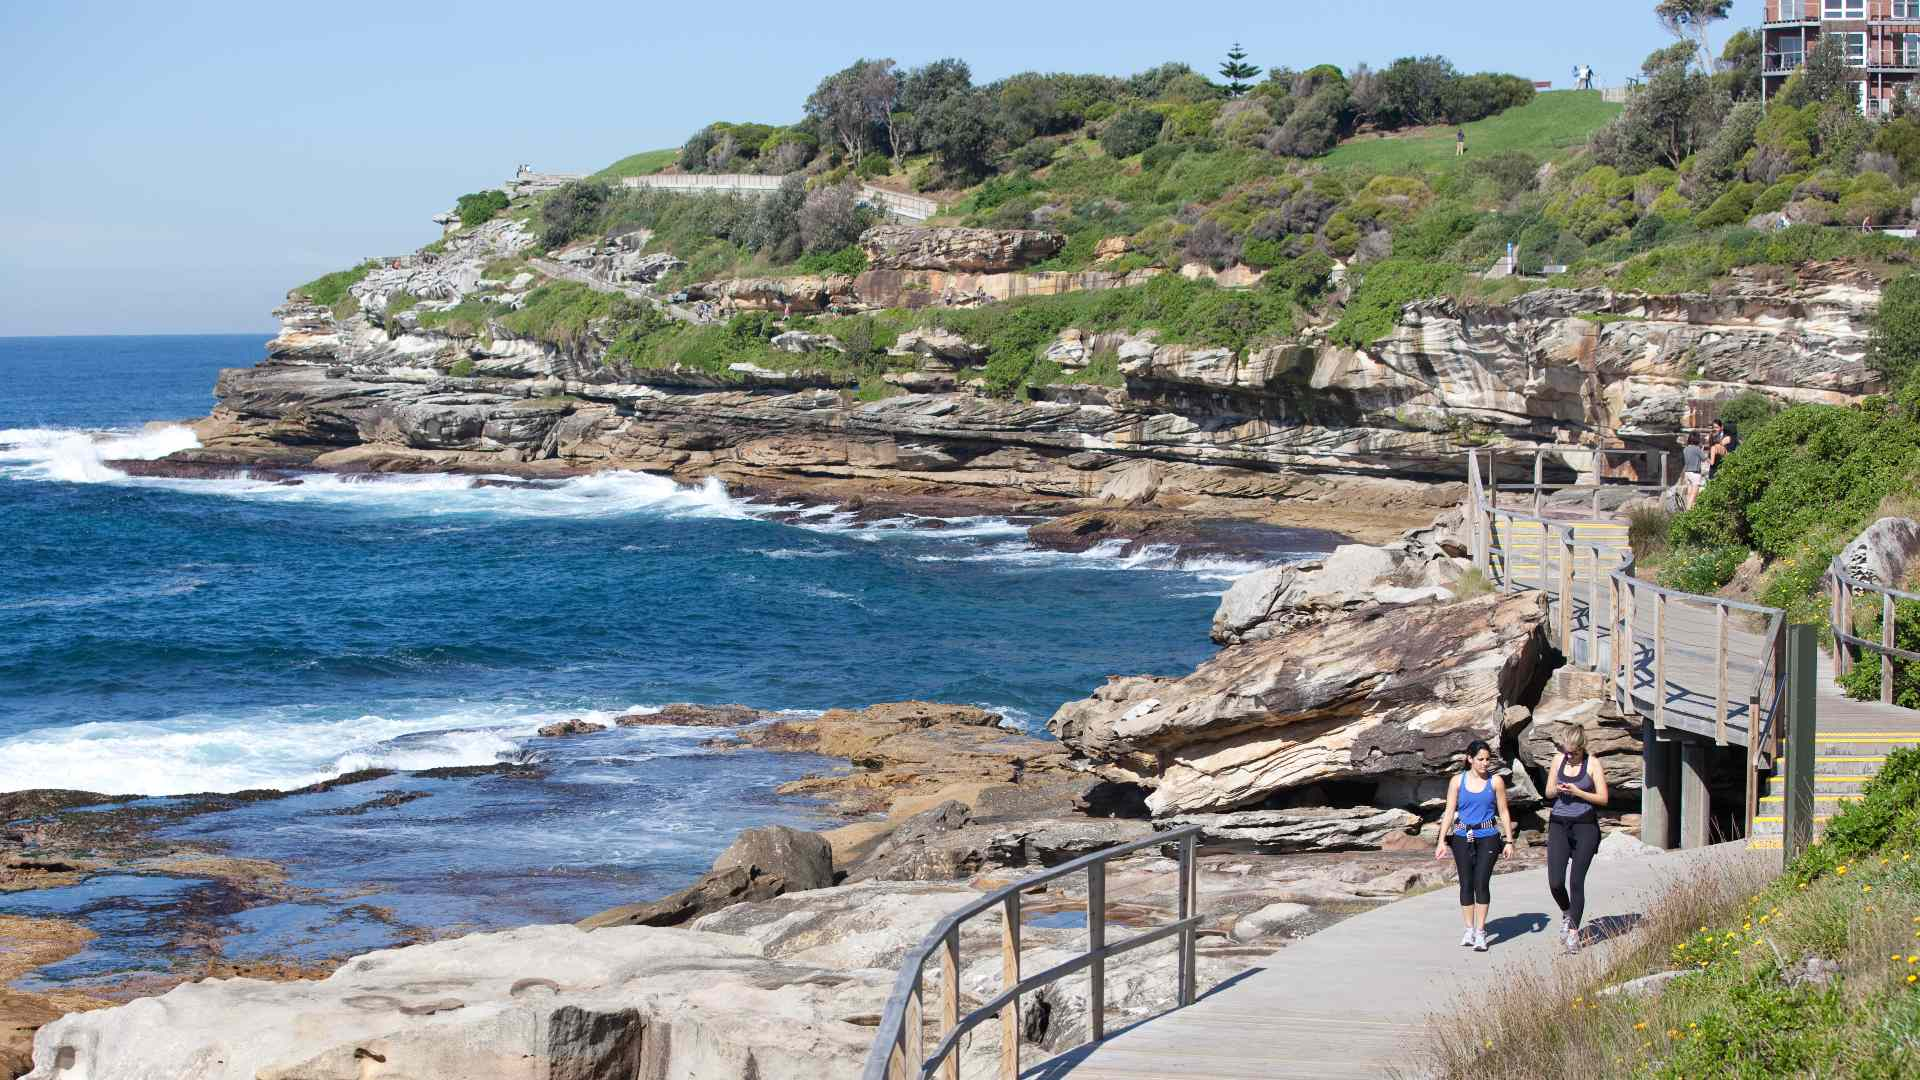 Seven Rewarding Pit Stops to Make When You're Tackling the Bondi to Coogee Run